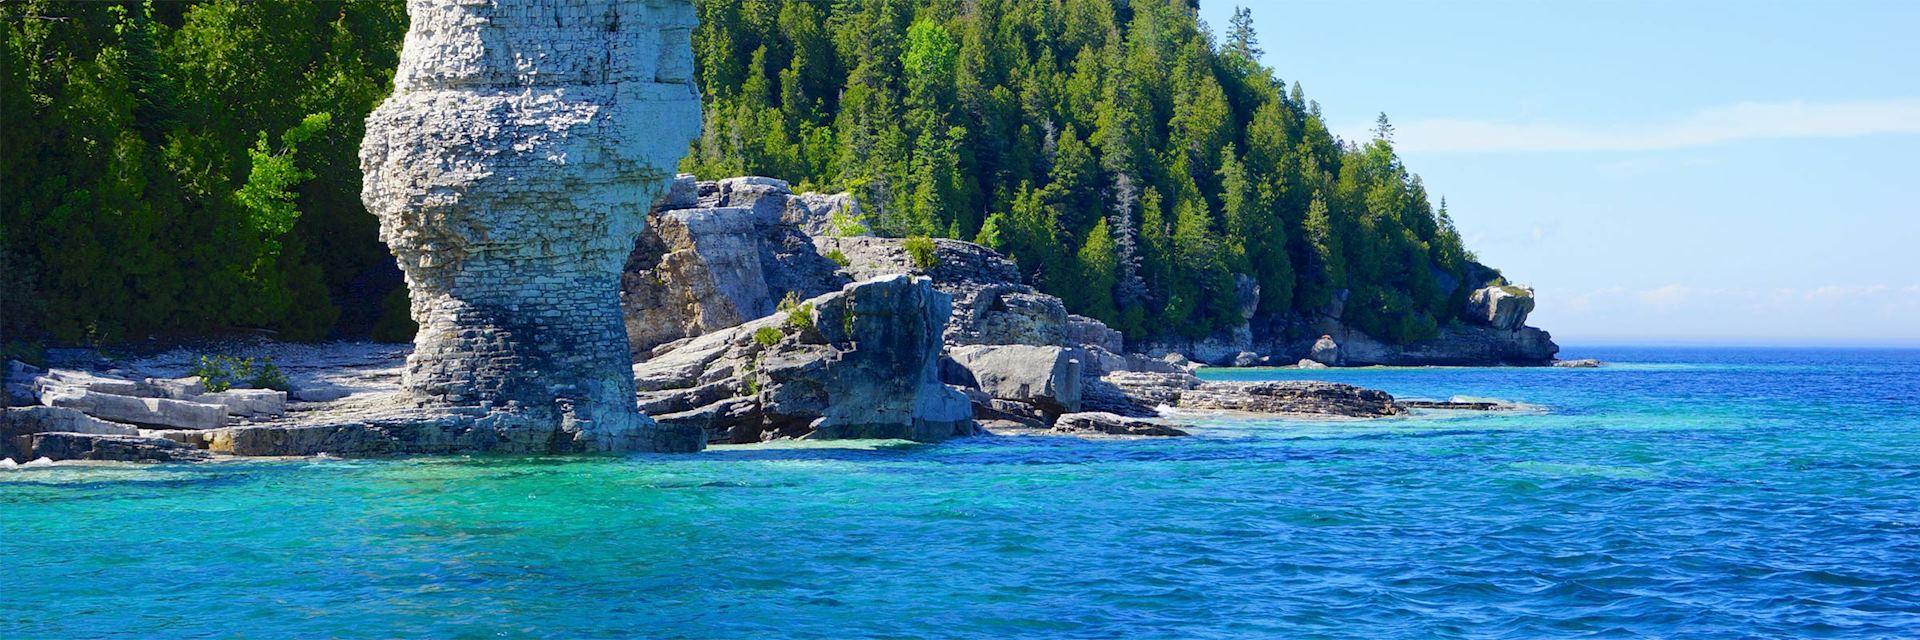 Five Fathom National Marine Park, Tobermory